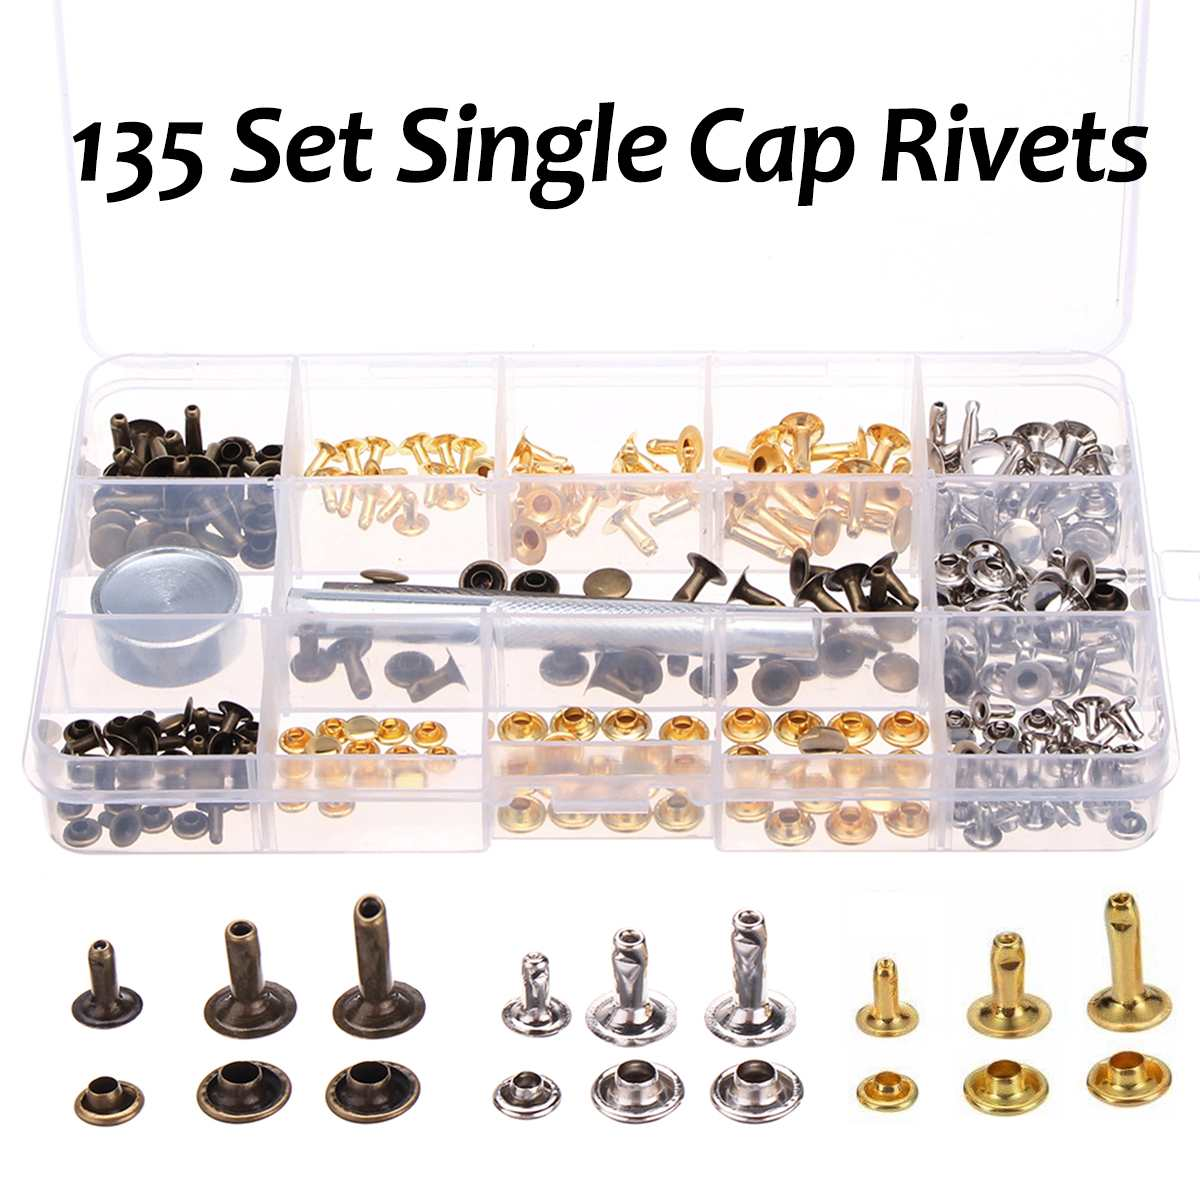 138 Set Single Cap Rivet Tubular Metal Studs W/ Fixing Tool For Leather Craft Repairing Decor Leather Rivets 3 Colors 3 Sizes